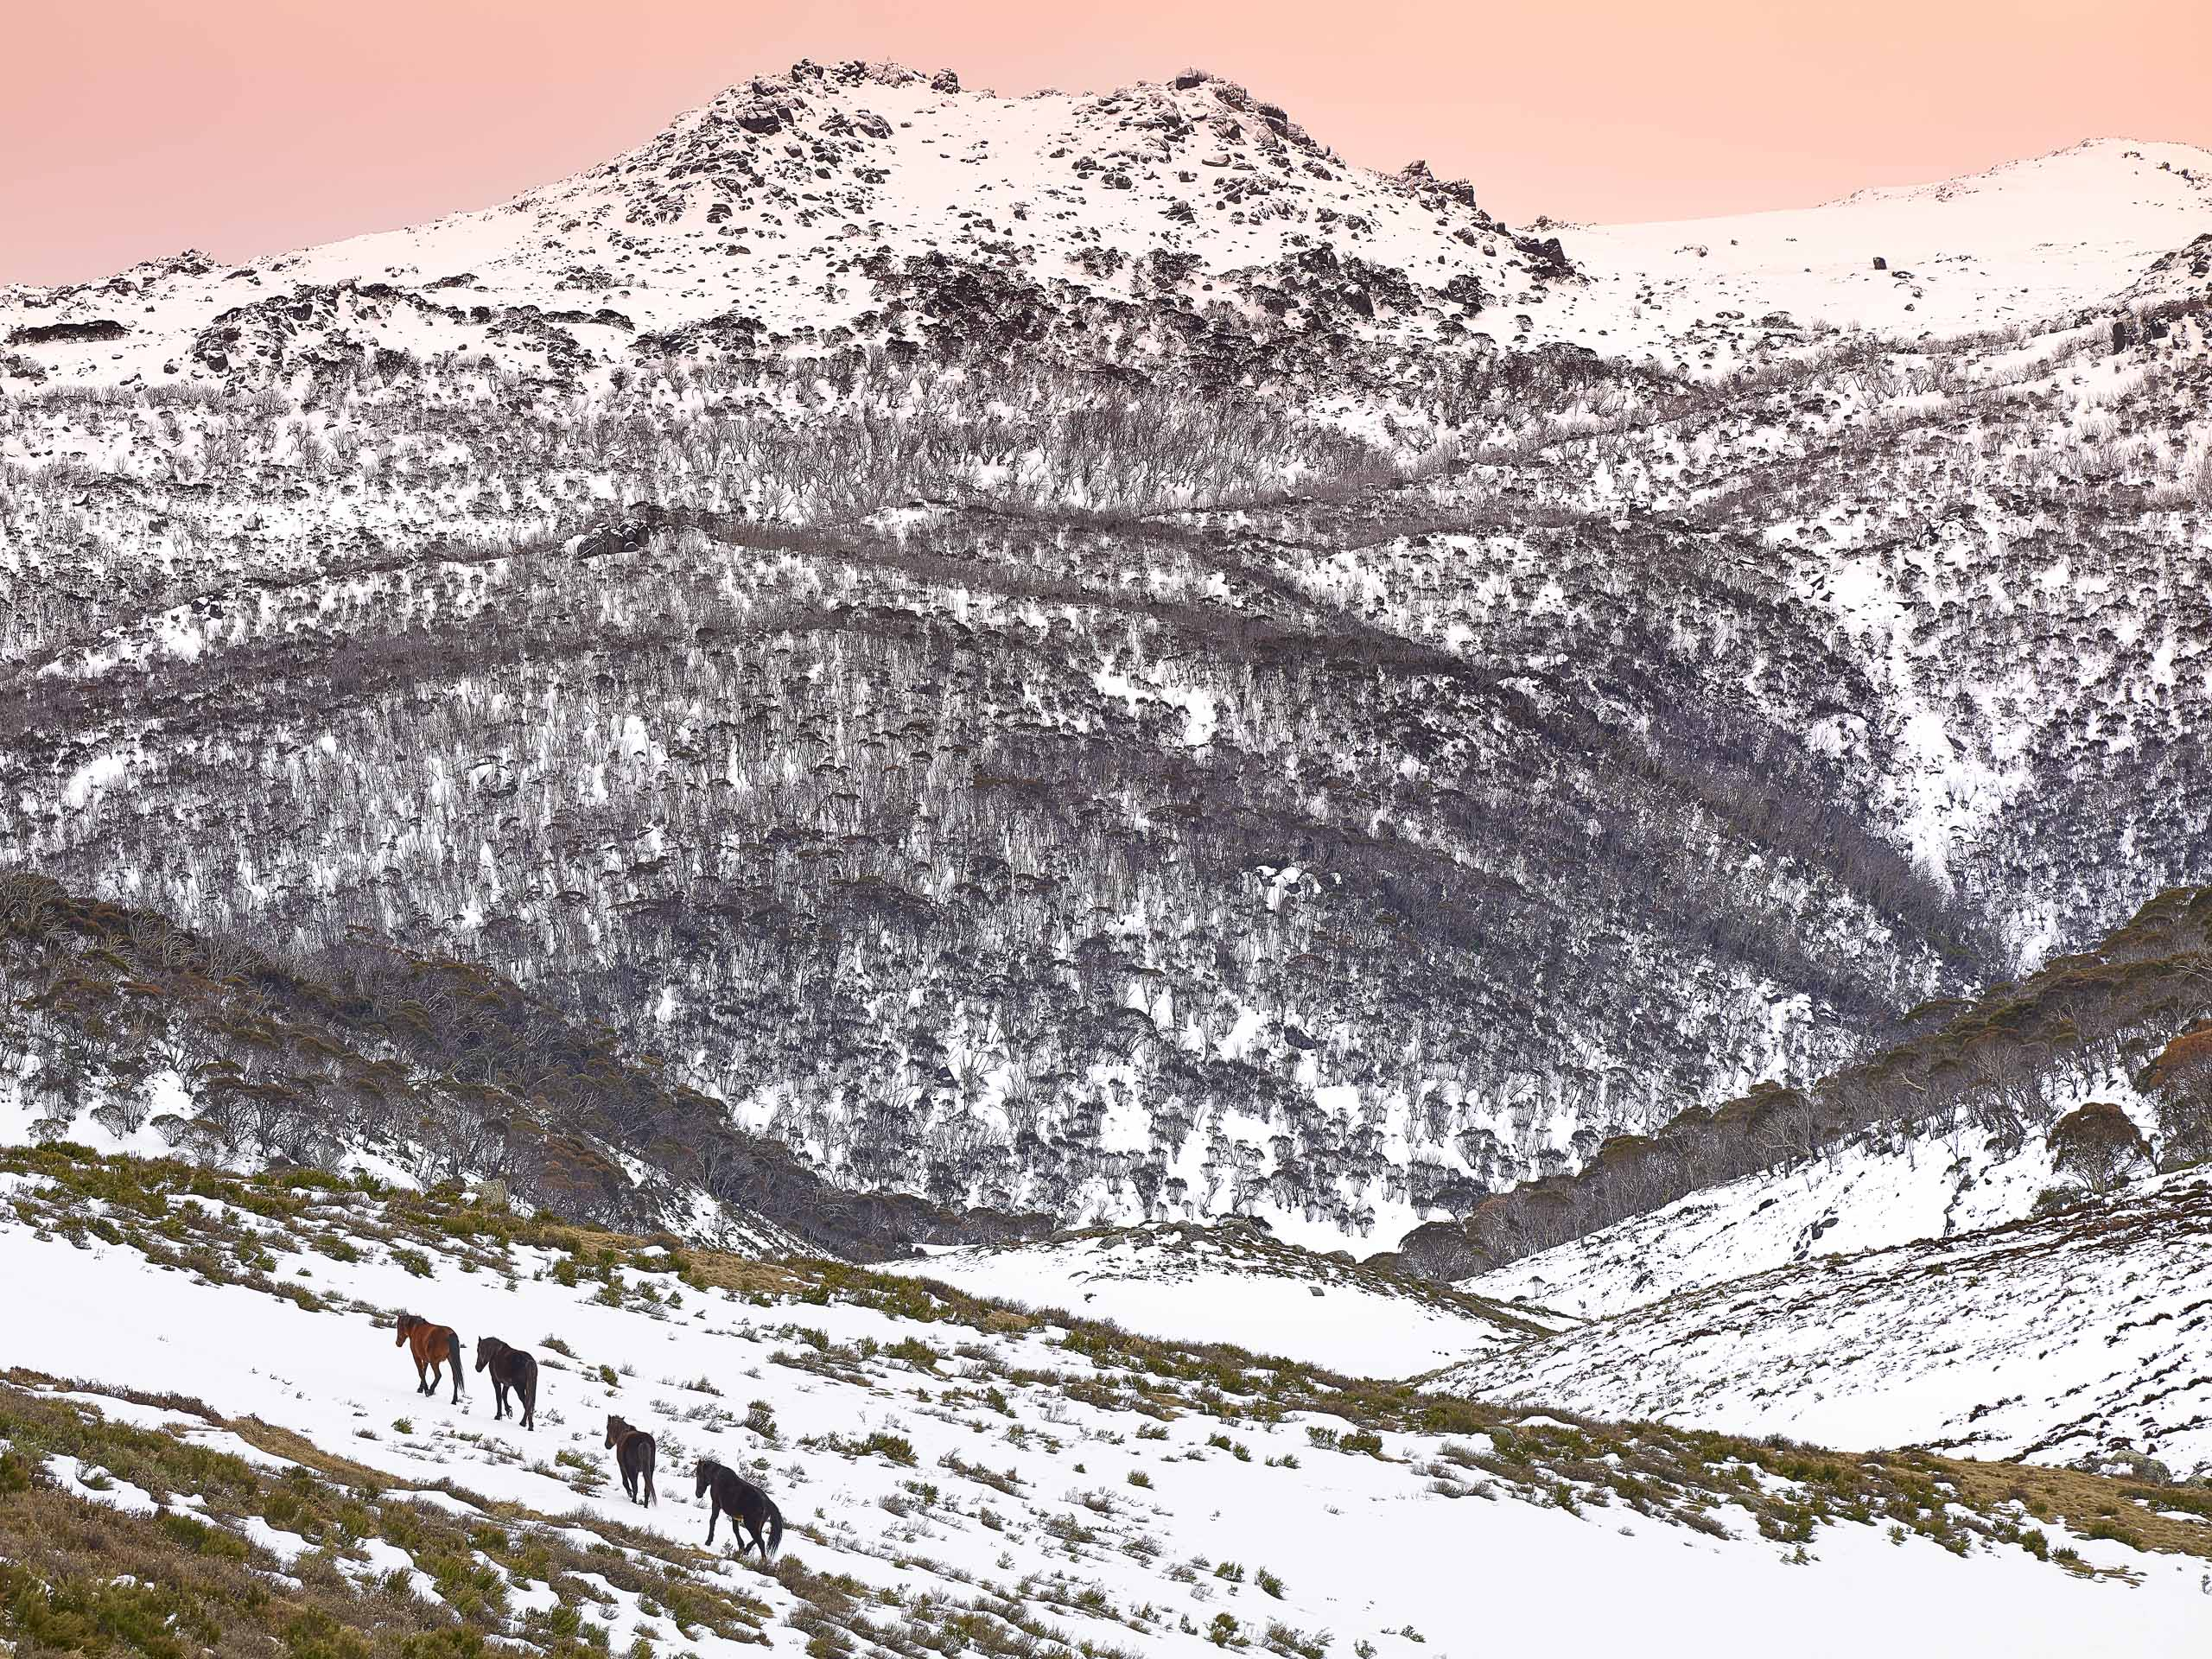 Brumbies in the snow, Koscuiuszko National Park, NSW, Australia.